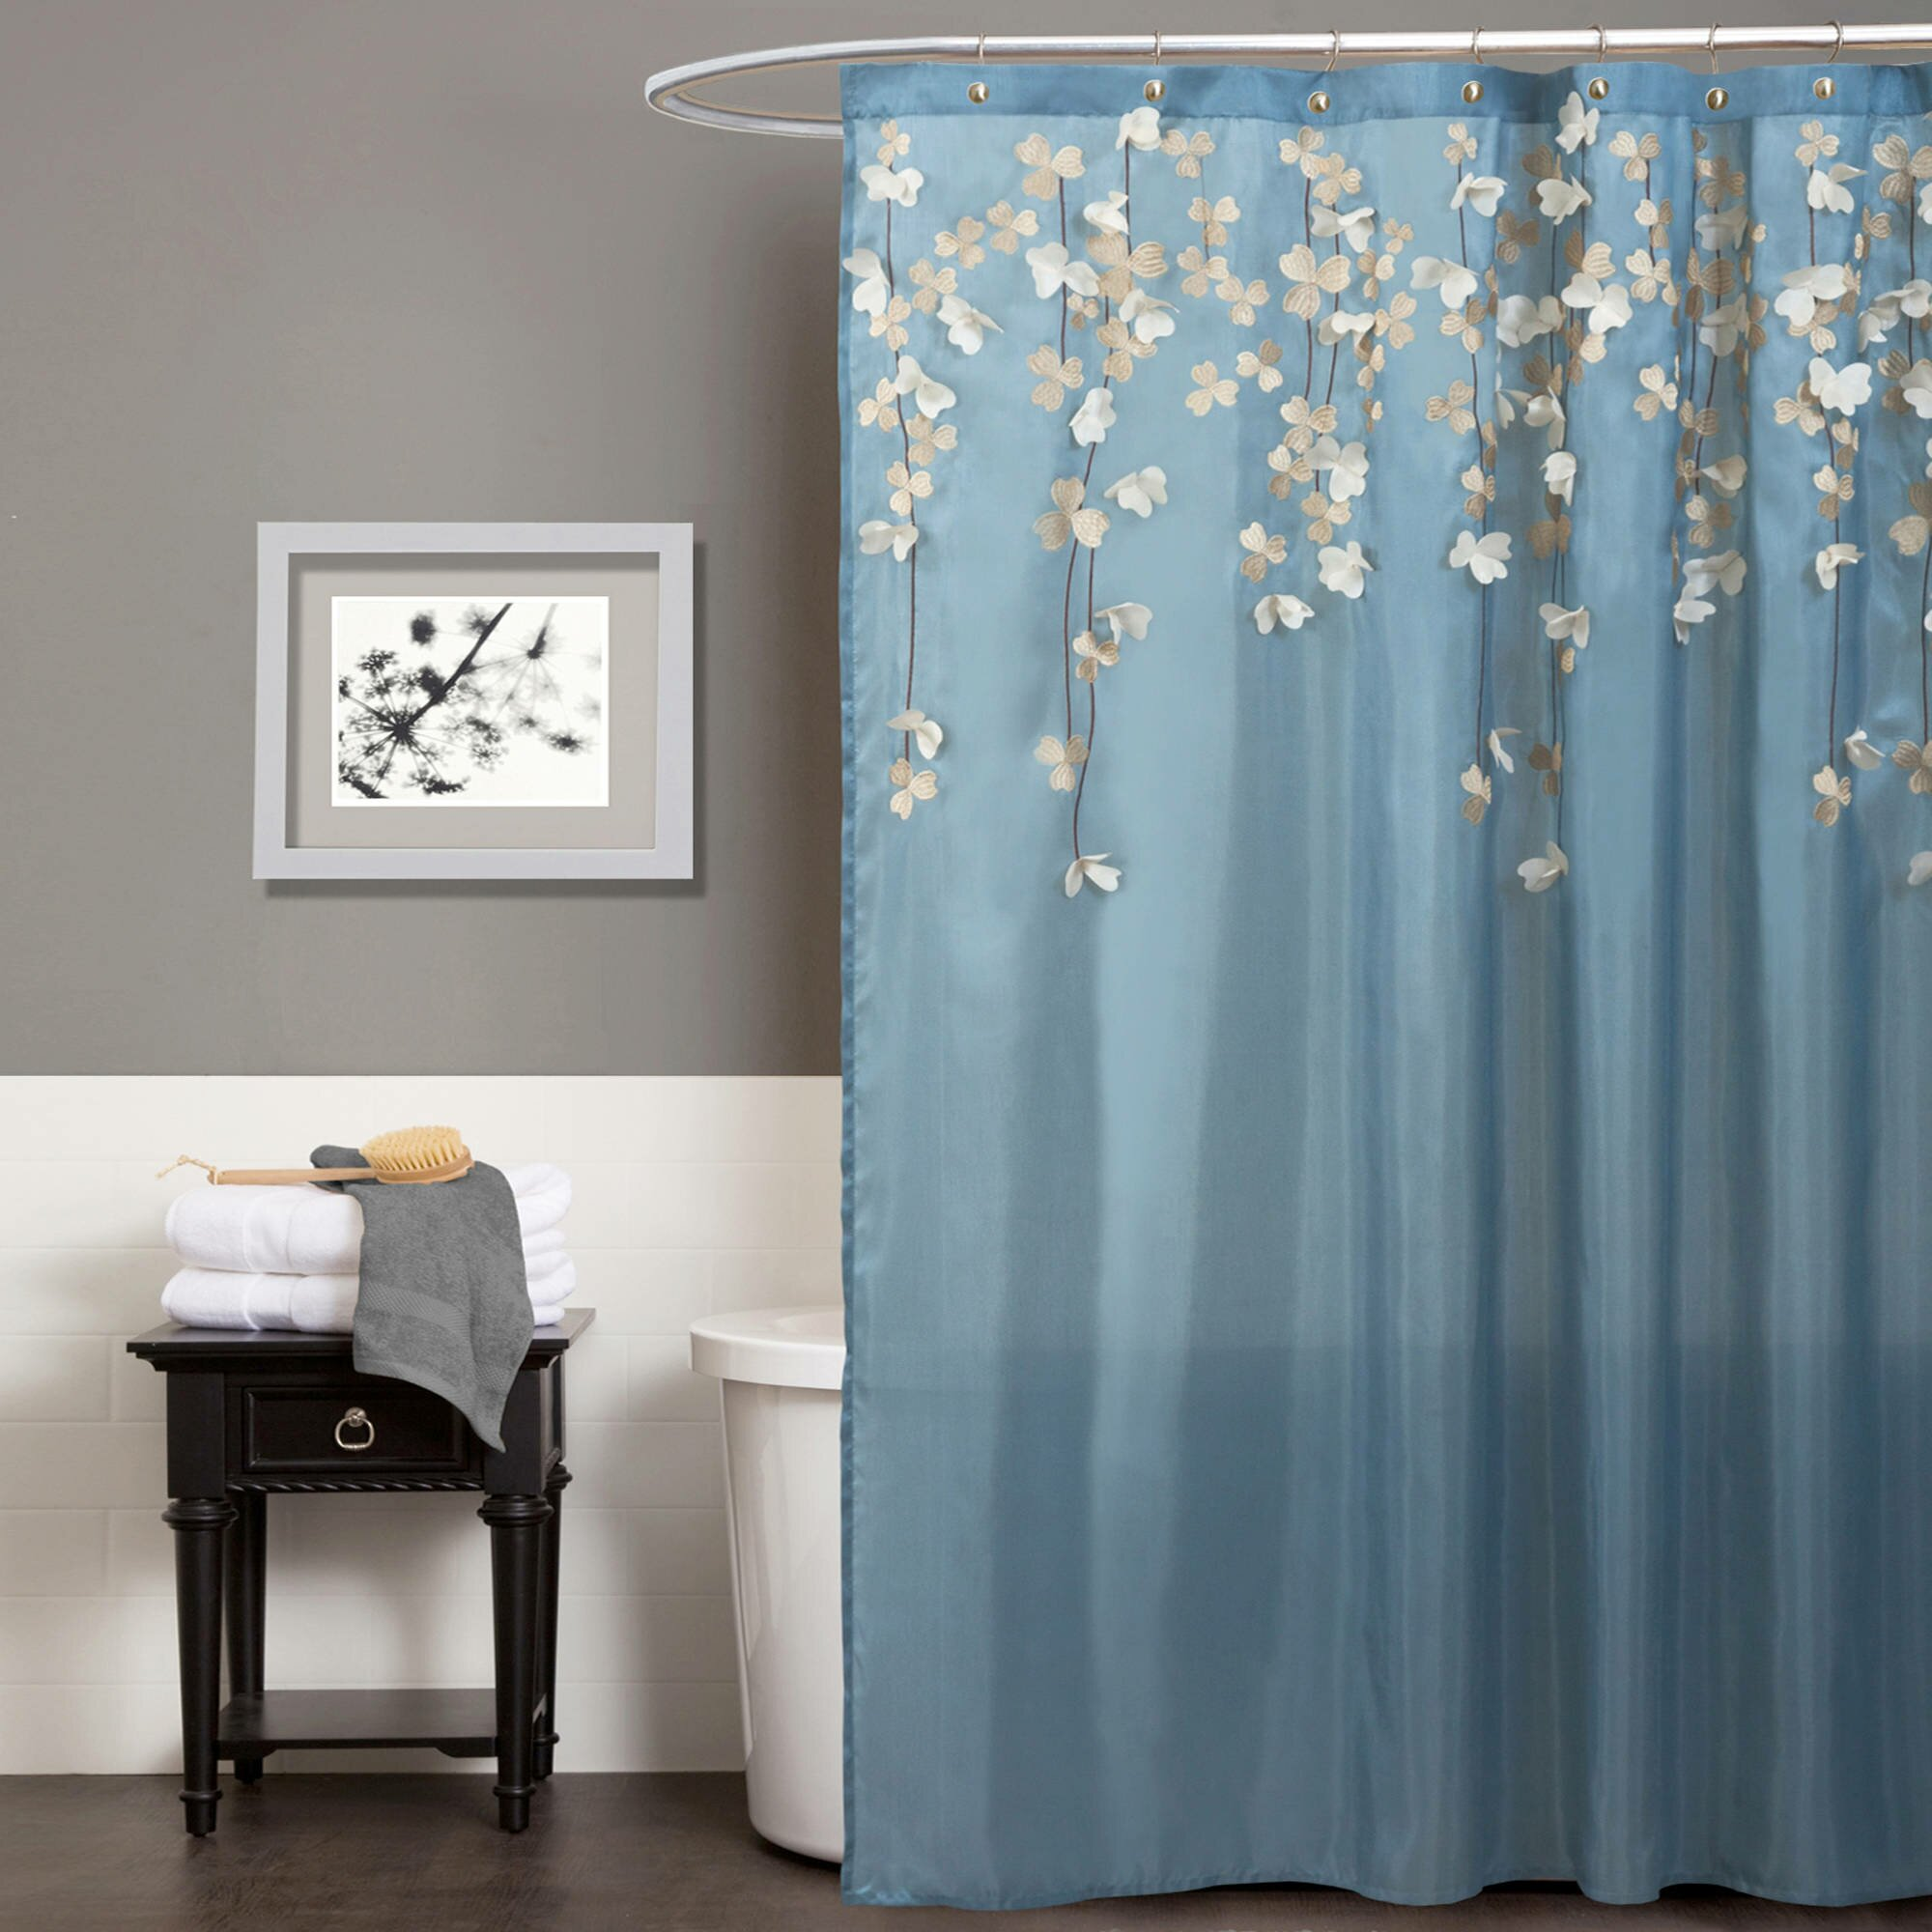 Walmart Shower Curtain | Wal Mart Shower Curtains | Discount Fabric Shower Curtains